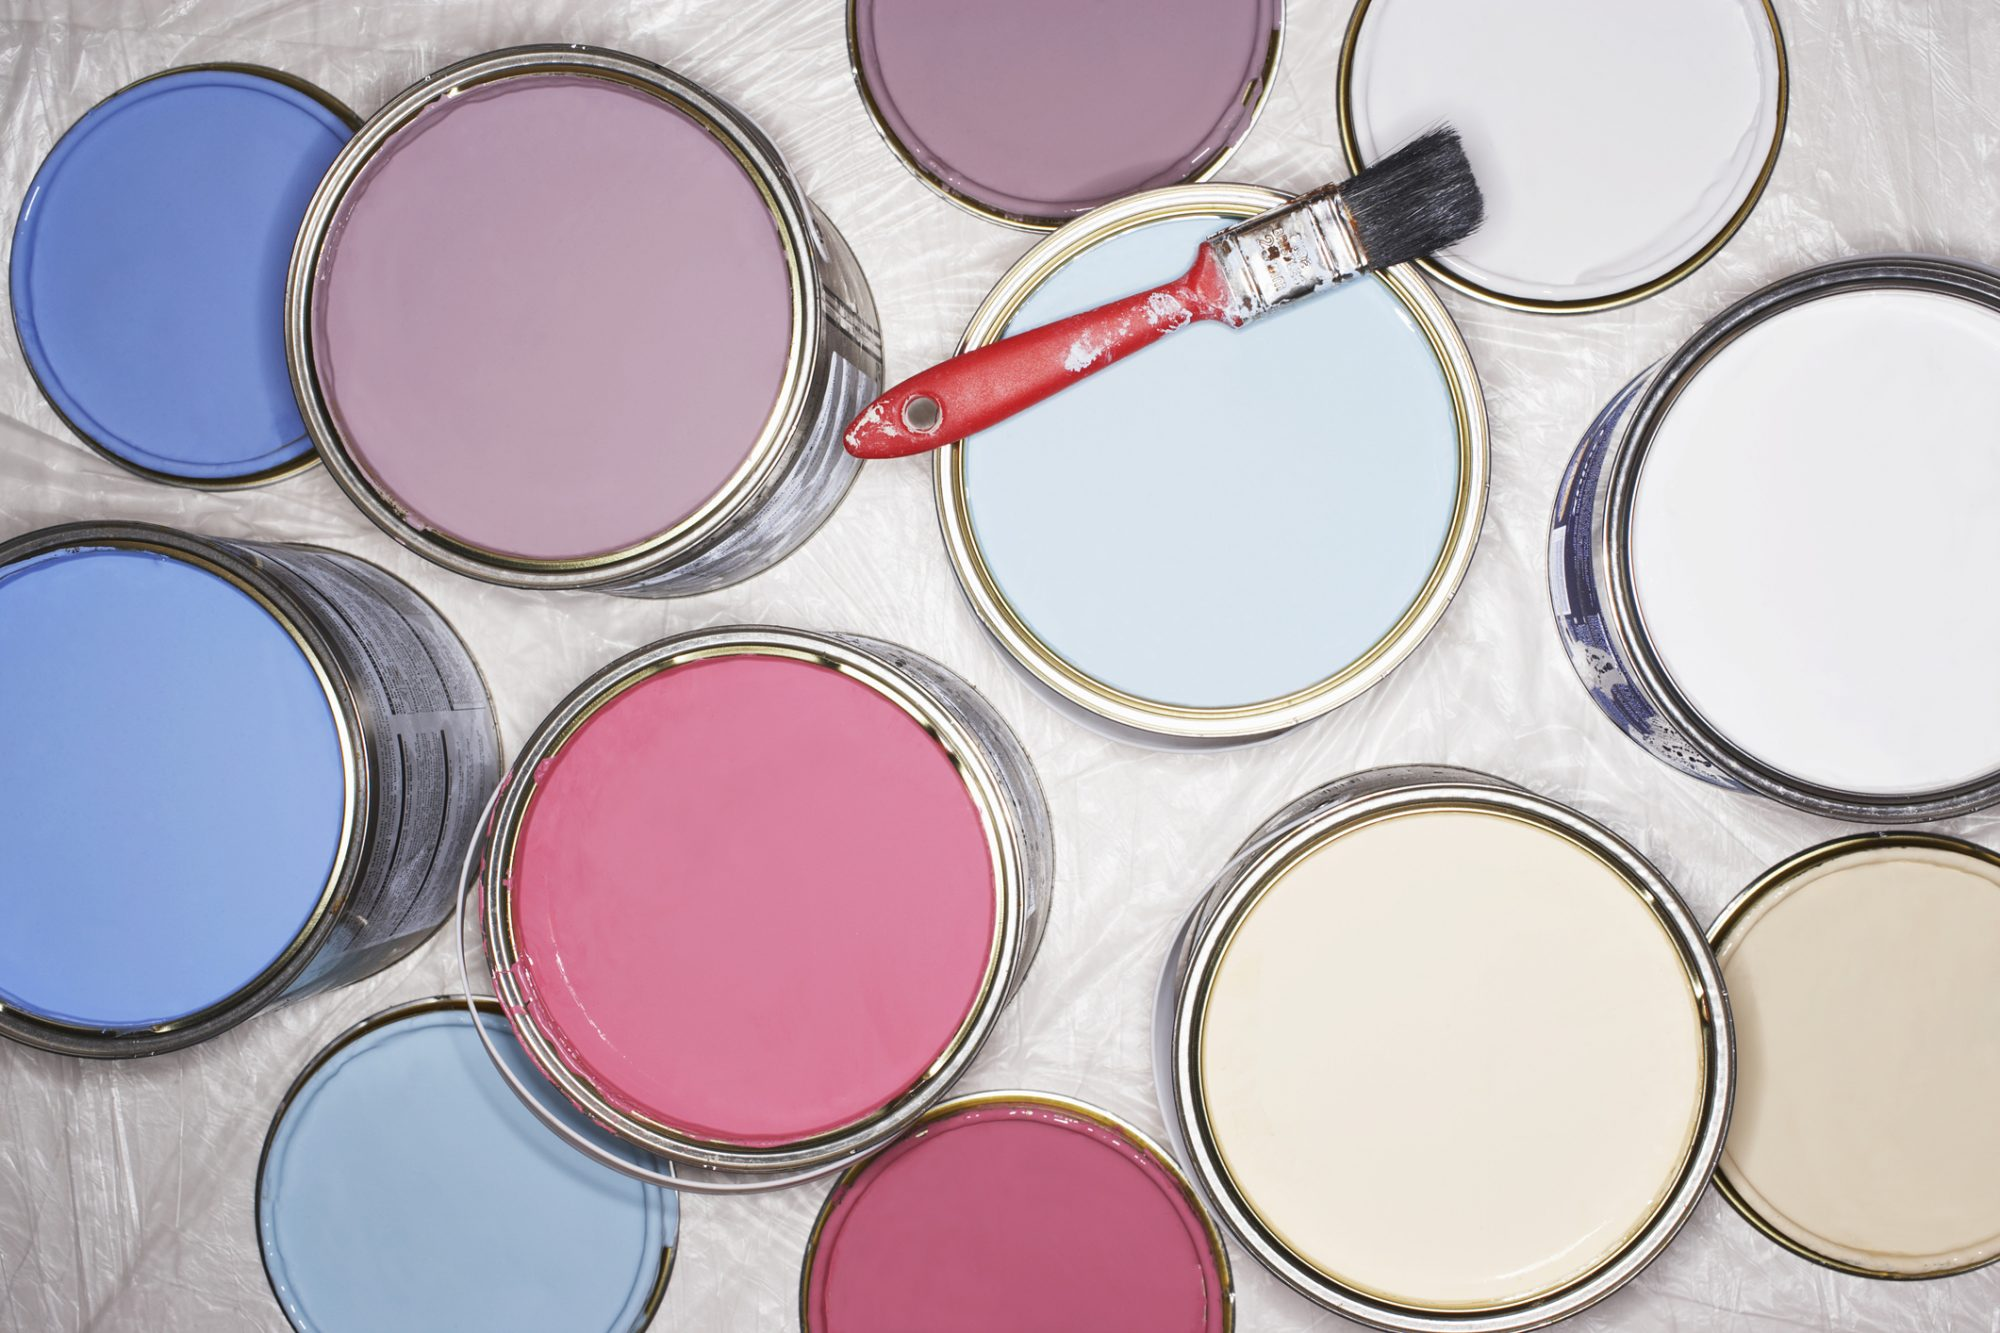 Cans of paint. Is one the Behr Color of the year?